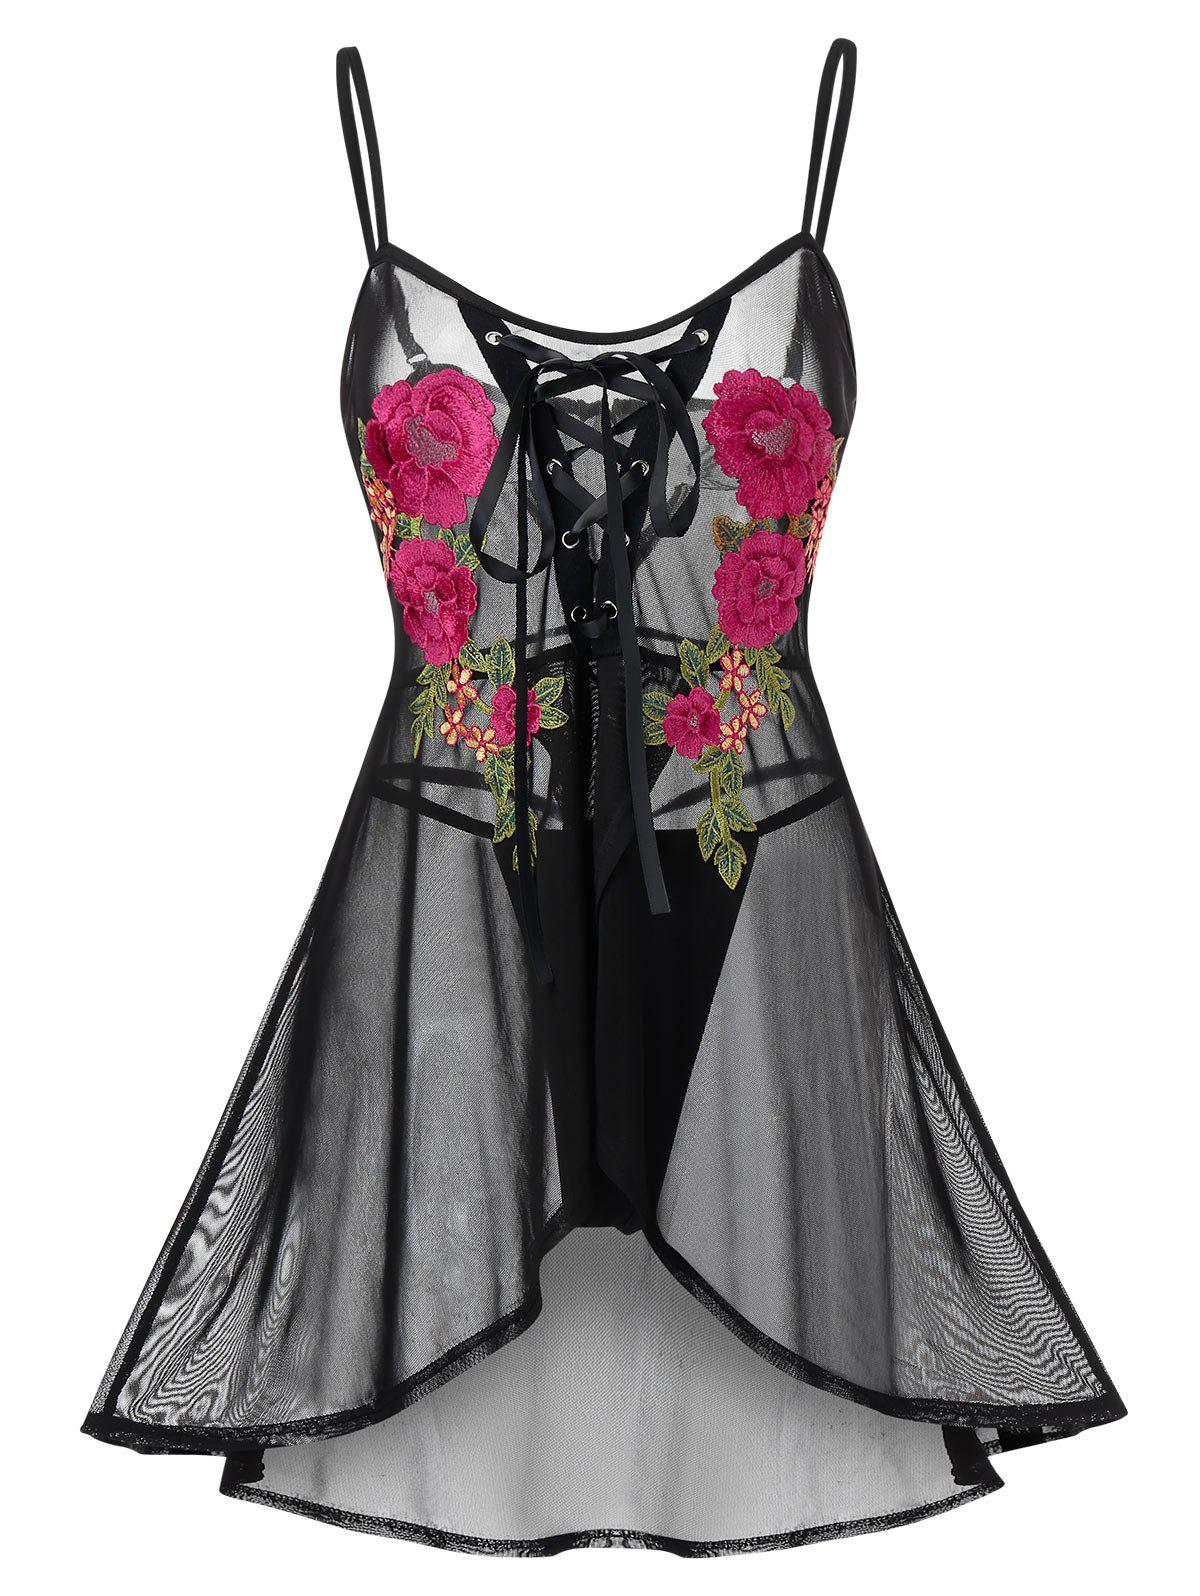 Plus Size Lace Up Flower Embroidered Lingerie Babydoll - BLACK 5X